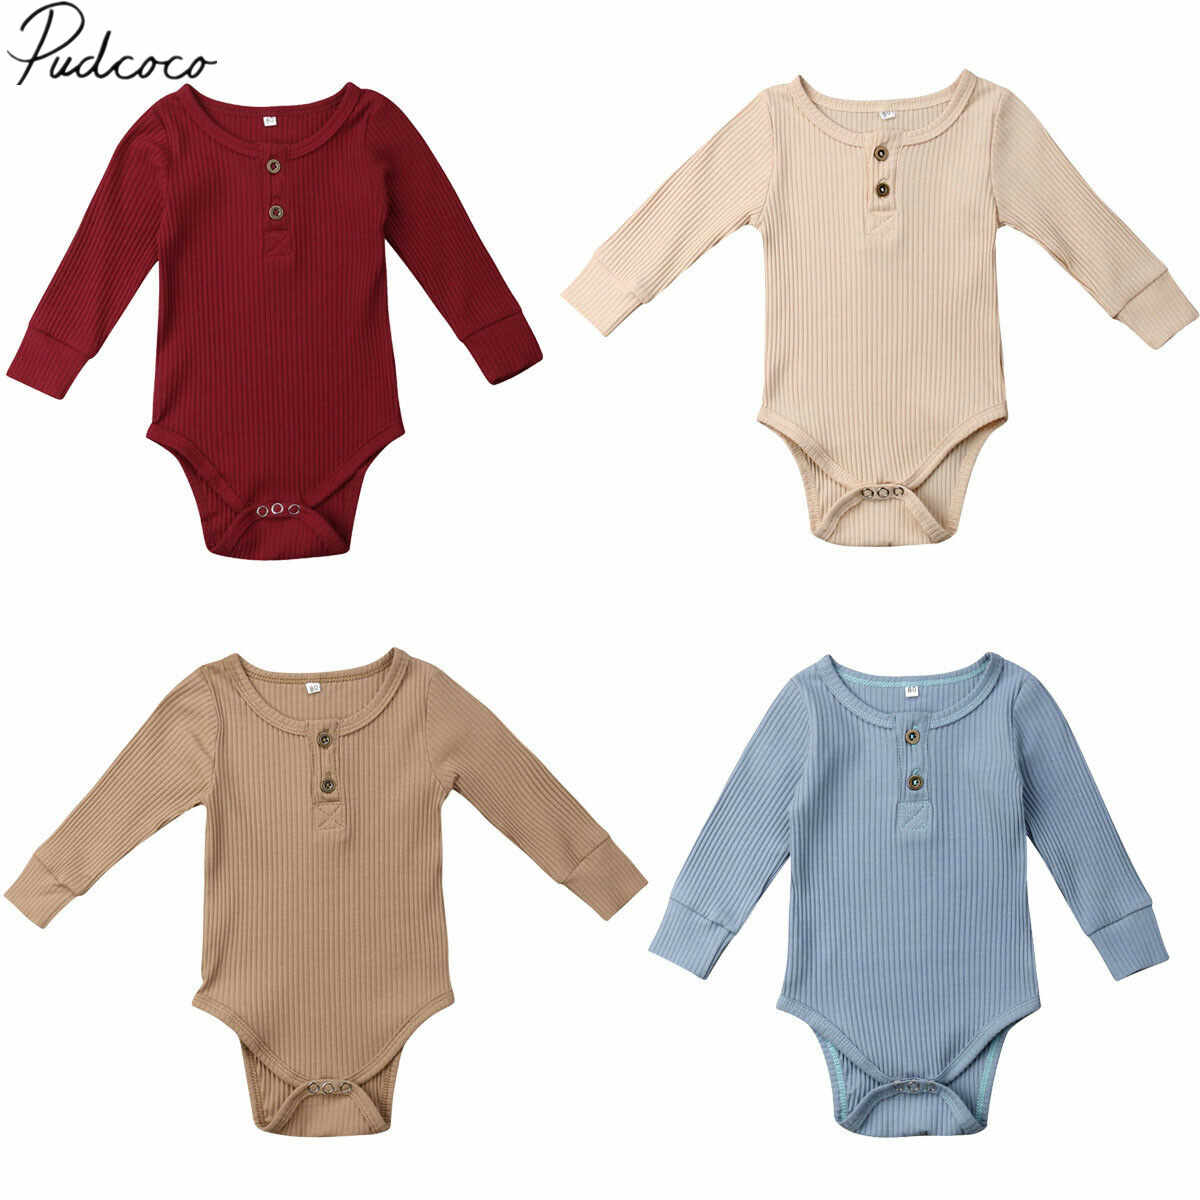 2020 Brand New Newborn Infant Baby Girl Boy 늑골이있는 바디 슈트 Ruffle 원피스 Solid Jumpsuit Long Sleeve Outfits Spring Sunsuit